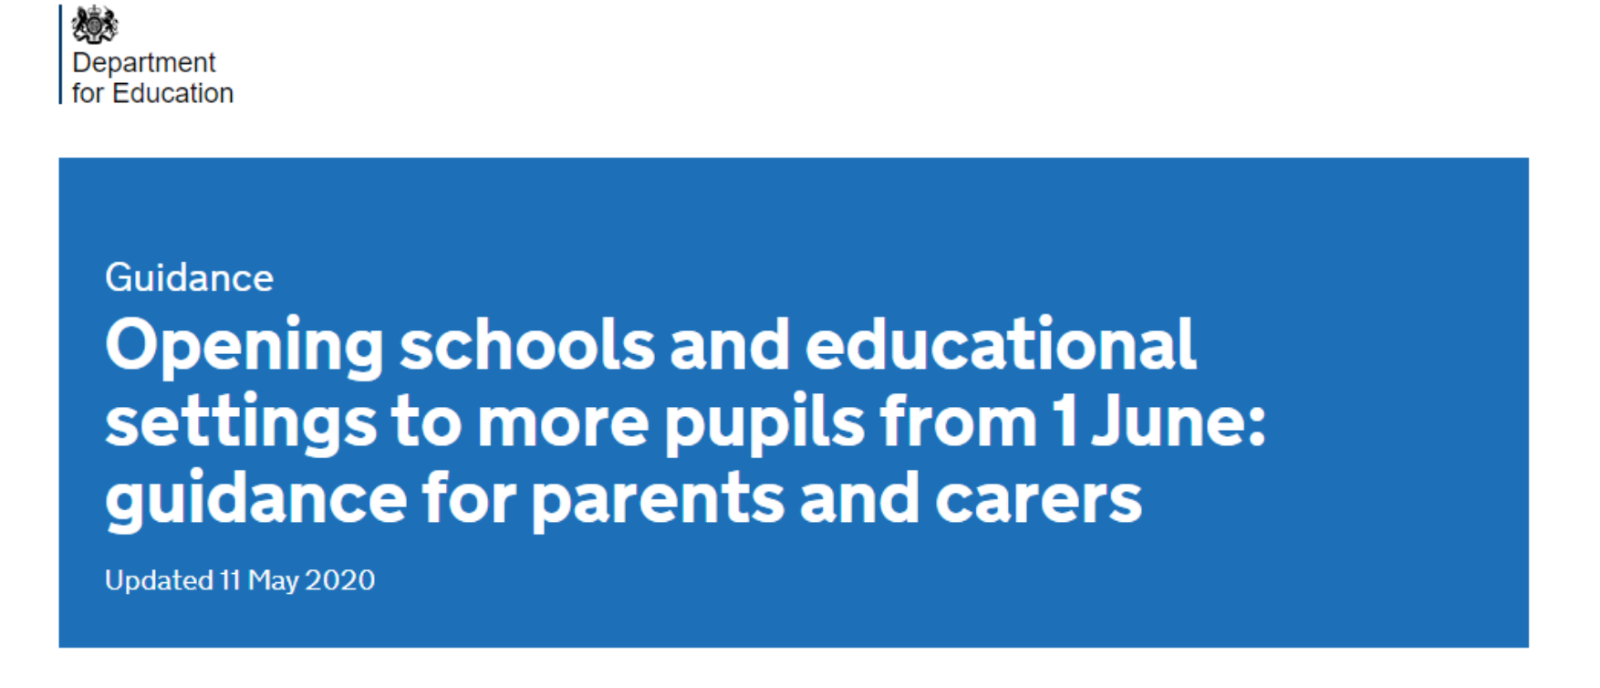 Opening schools and educational settings to more pupils from 1 June: guidance for parents and carers